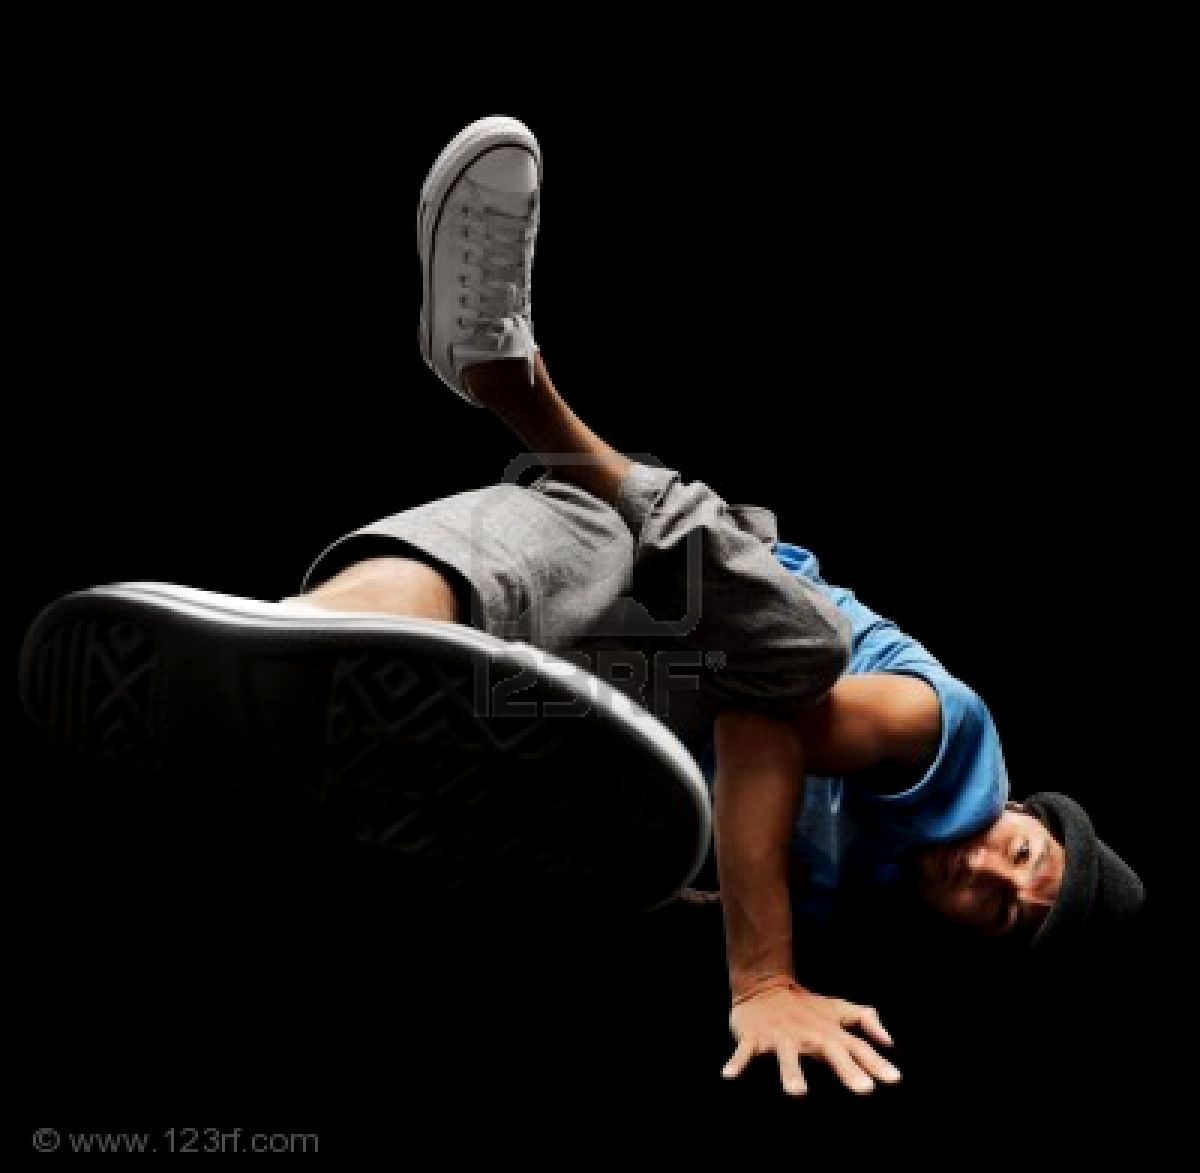 Hip Hop Dance Shoot on Pinterest | Hip Hop Dances, Hip hop and Dancer Quotes